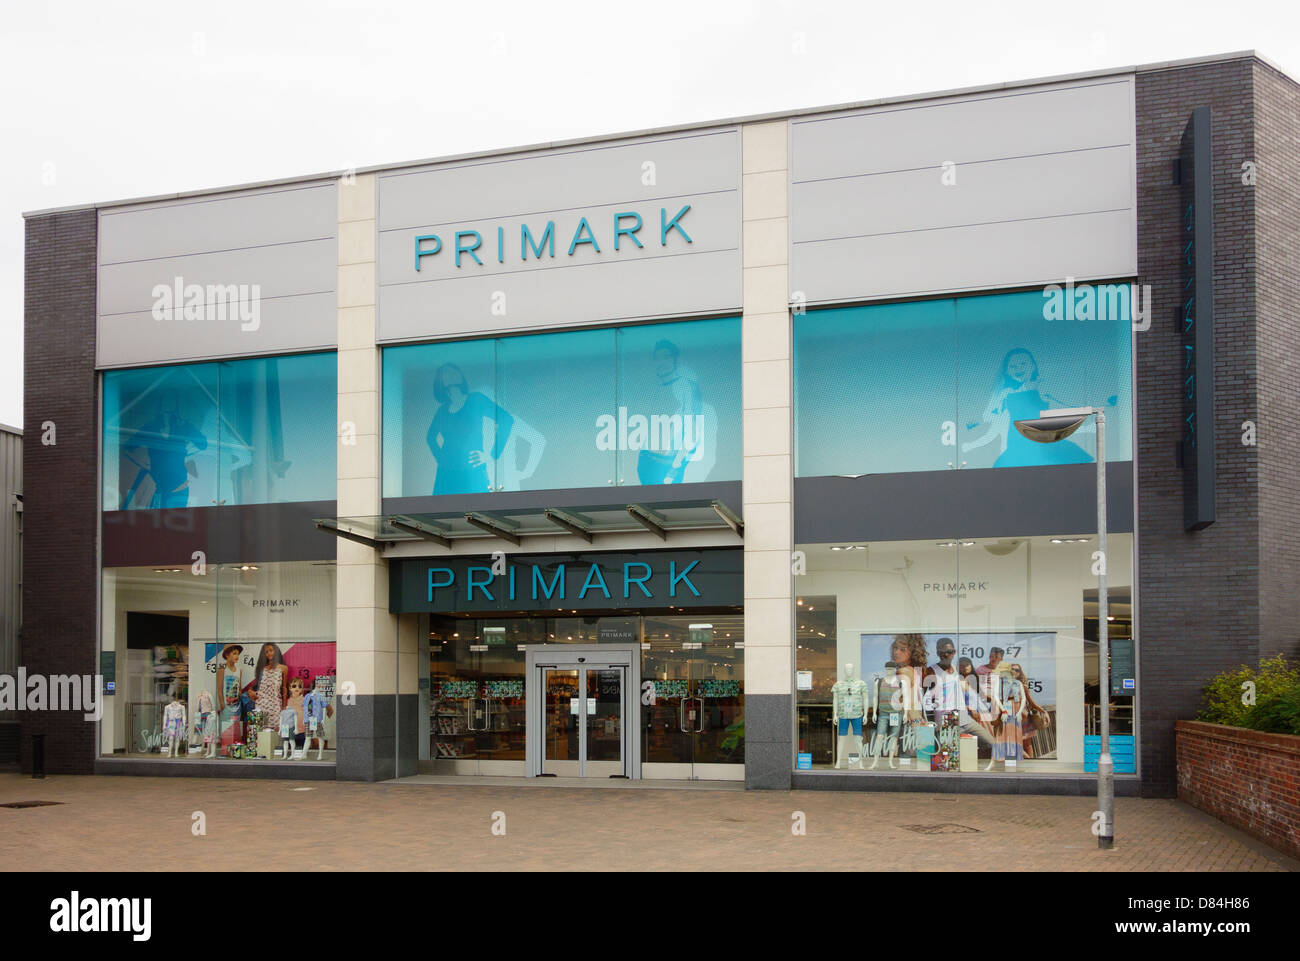 Primark store shop front entrance in shopping centre. Telford, Shropshire, England, UK, Britain - Stock Image